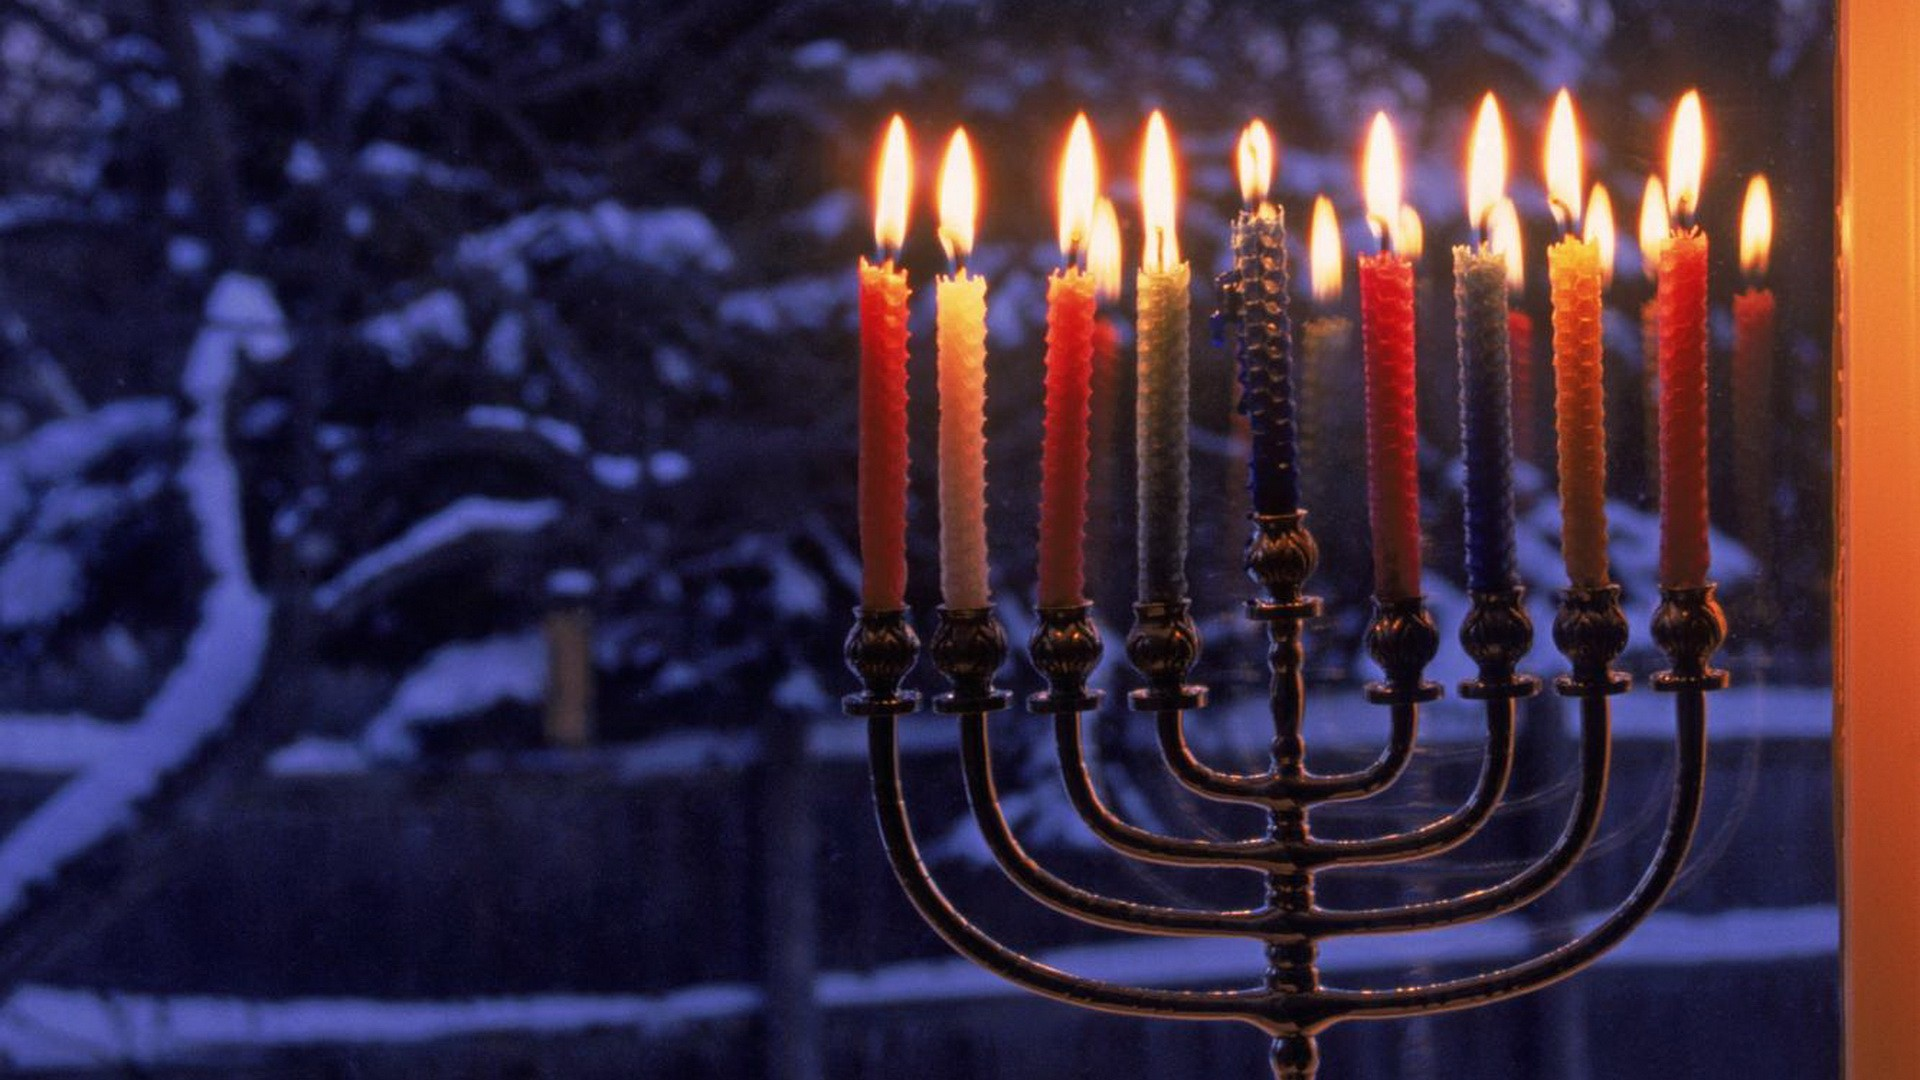 The eightday Jewish celebration known as Hanukkah or Chanukah commemorates the rededication during the second century BC of the Second Temple in Jerusalem